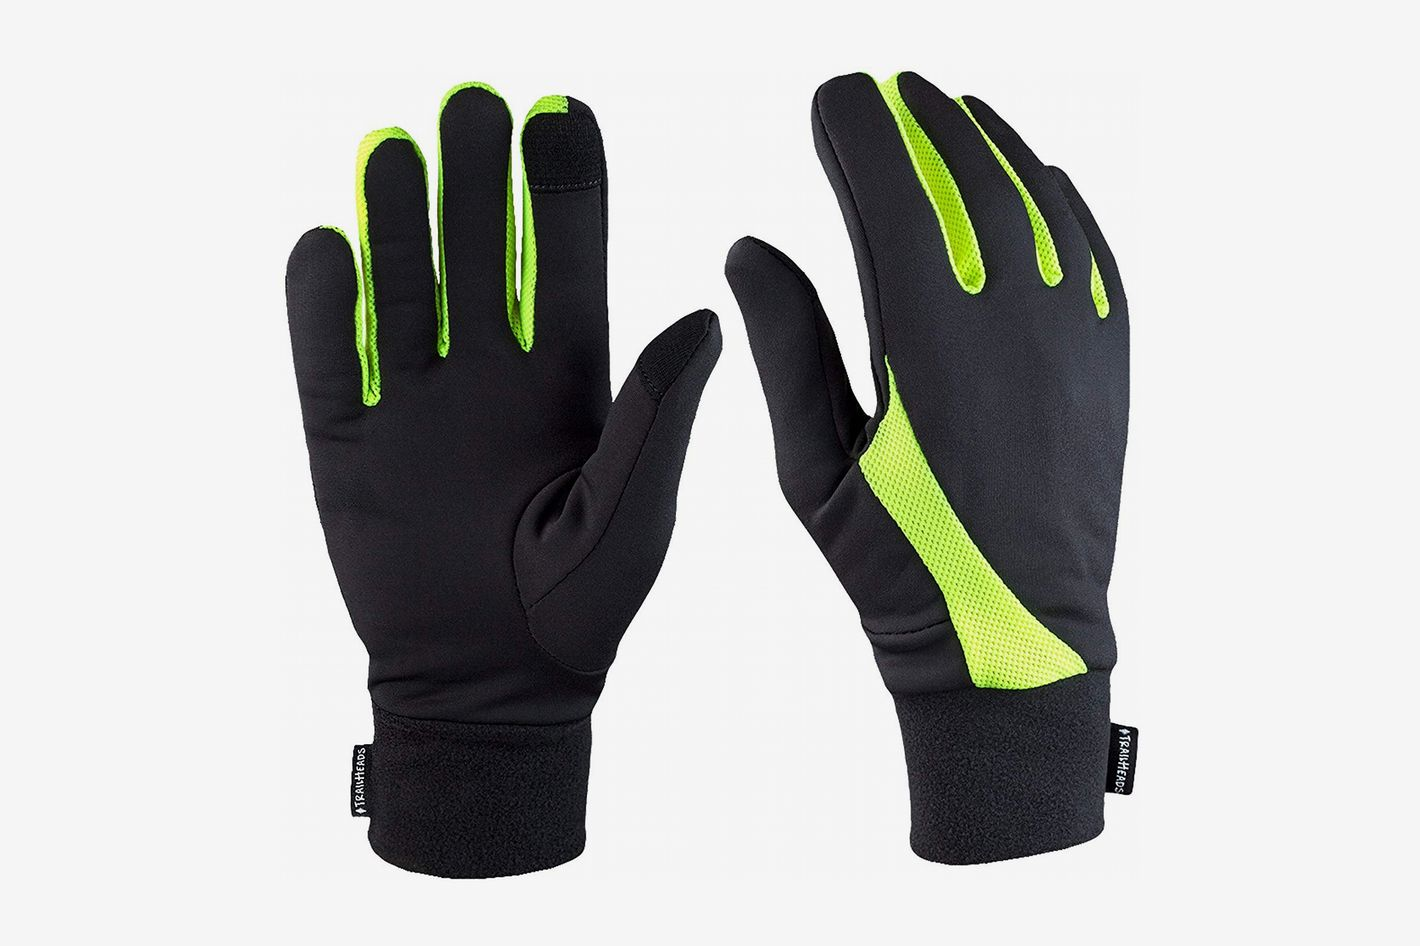 TrailHeads Lightweight Running Gloves with Touchscreen Fingers